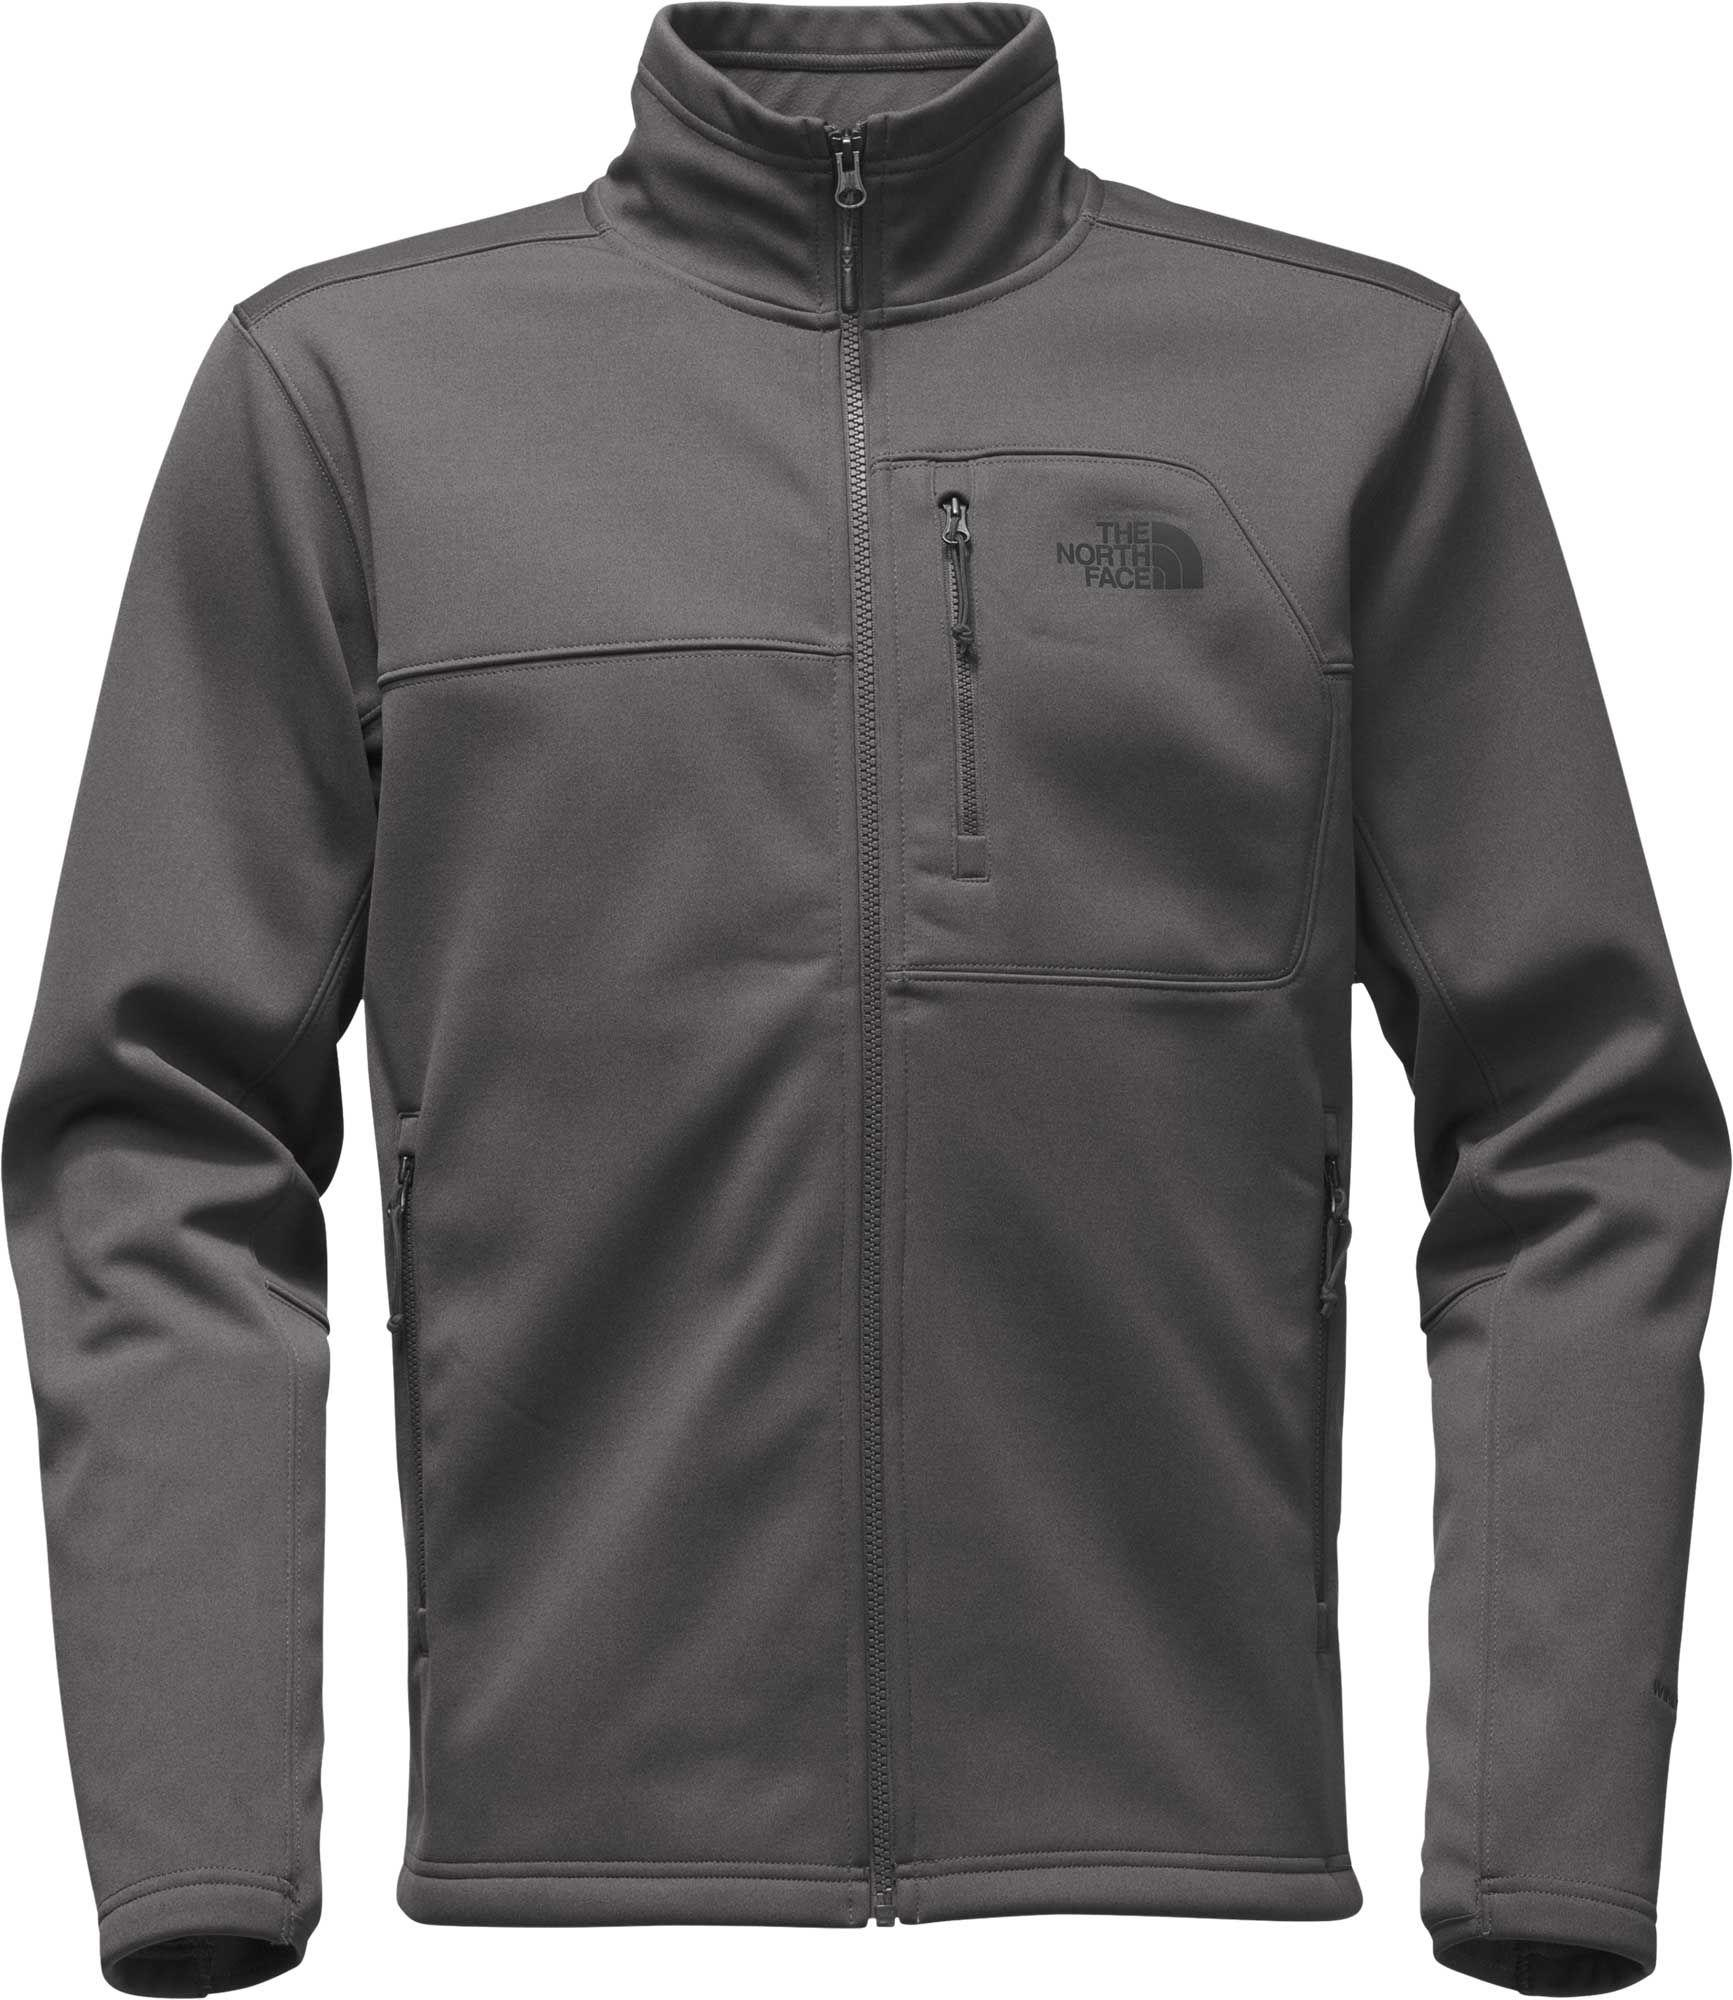 f5671f229 The North Face Apex Risor Full Zip Jacket in Gray for Men - Lyst